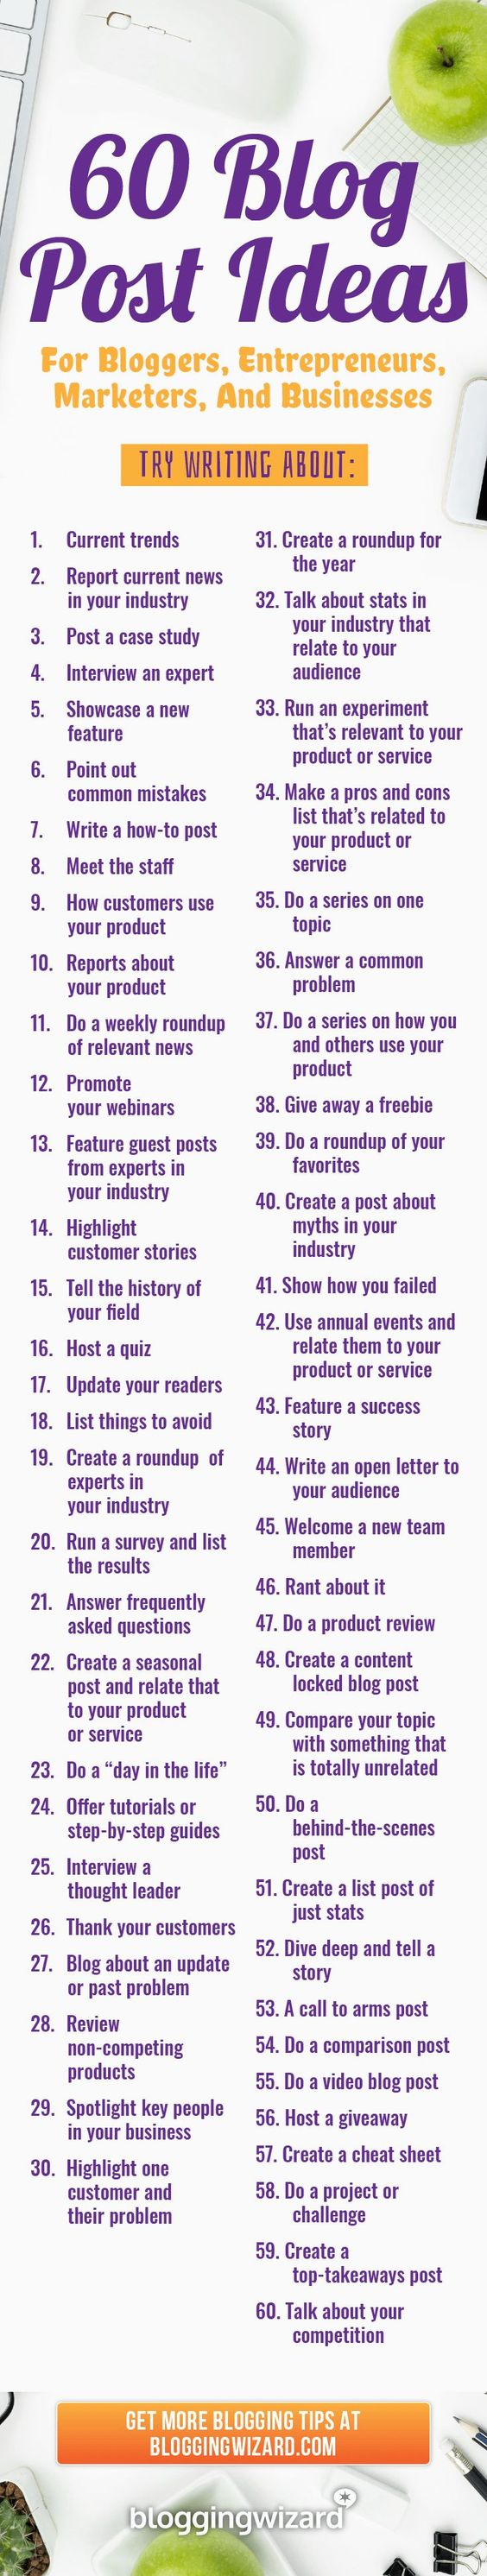 Not sure what to blog about? Use these blog post ideas to get started! #blogging #bloggingtips #bloggers #blog